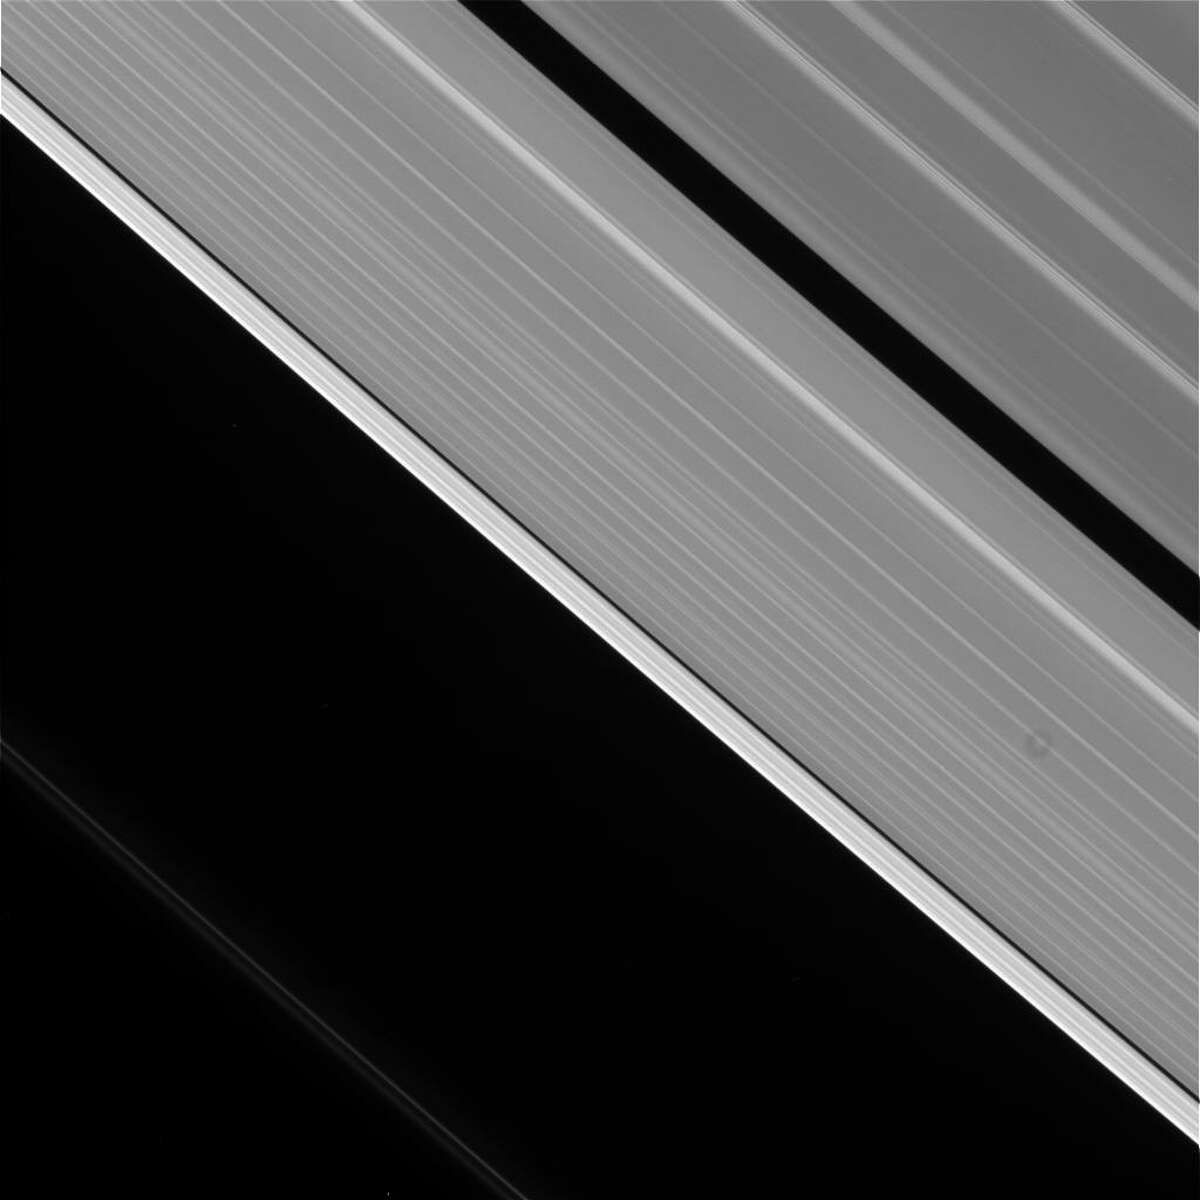 Date: May 15, 2017 Caption: The camera was pointing toward SATURN-RINGS, and the image was taken using the CL1 and CL2 filters. This image has not been validated or calibrated. A validated/calibrated image will be archived with the NASA Planetary Data System.